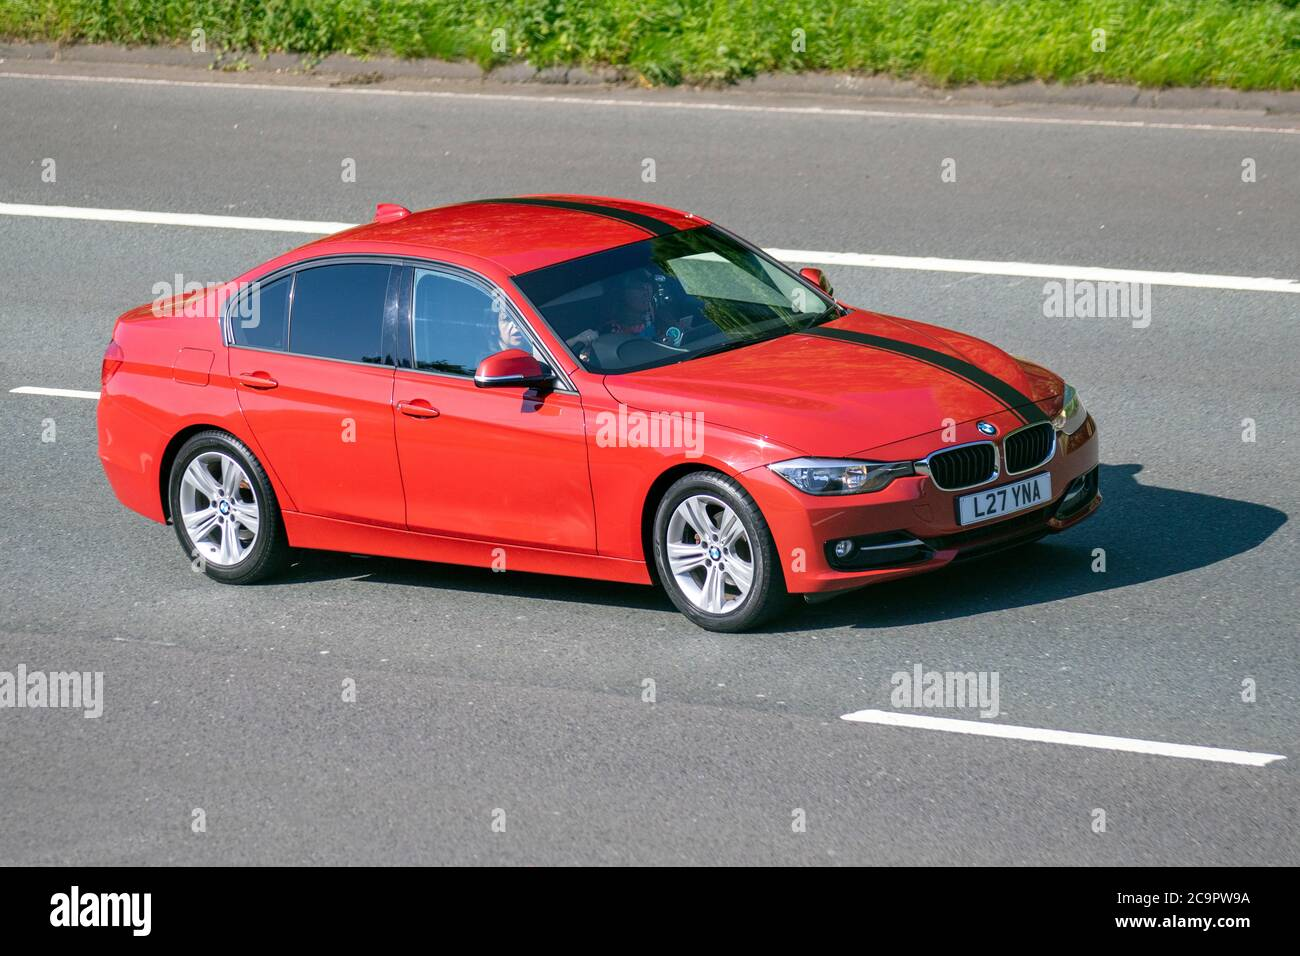 Bmw 3 Series Red High Resolution Stock Photography And Images Alamy